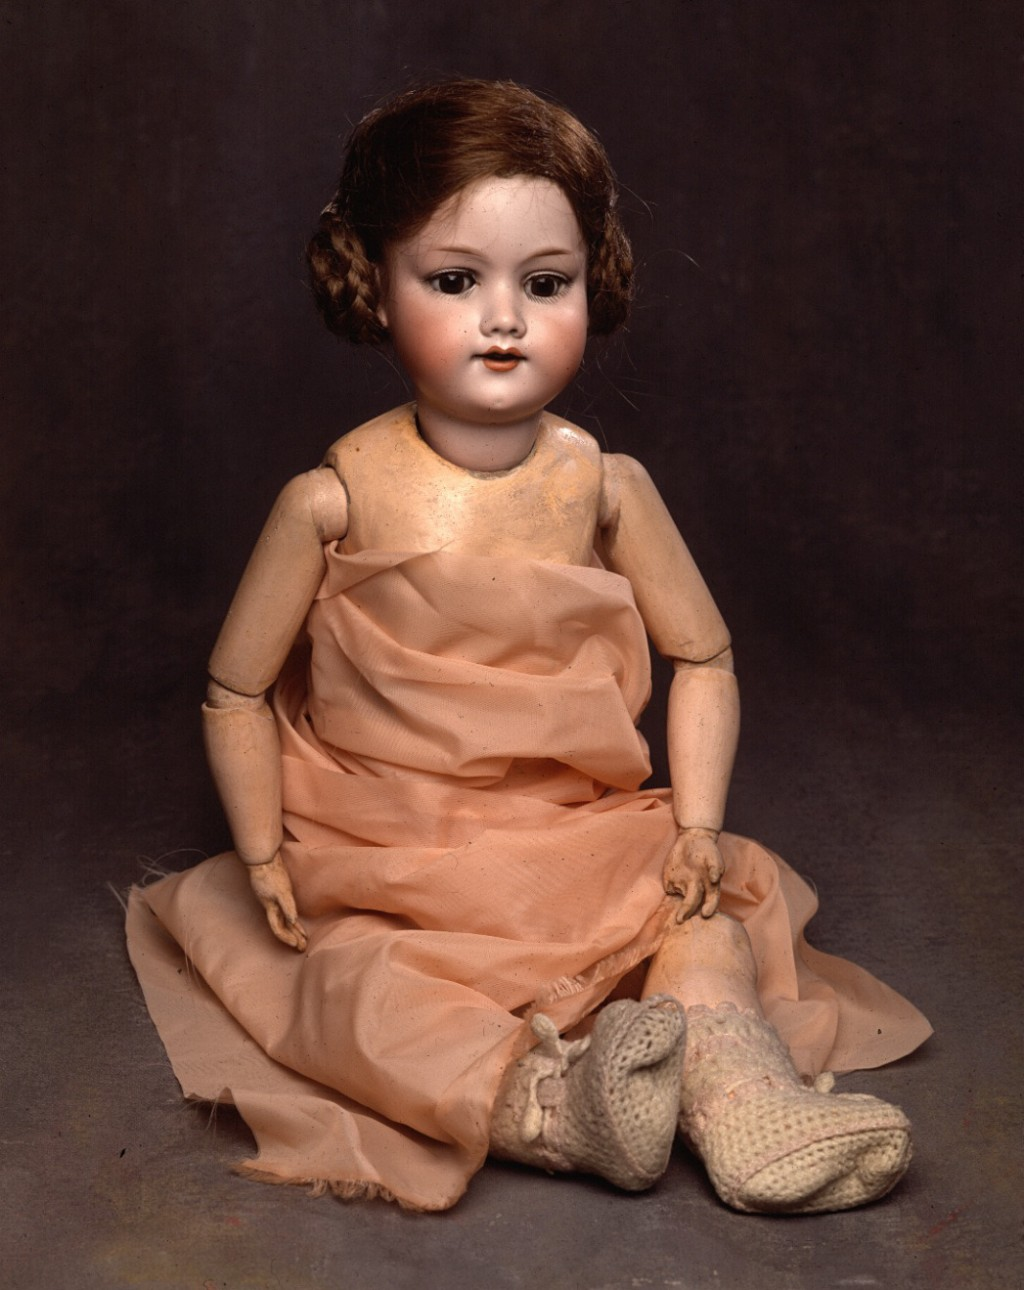 Doll from the Krakow ghetto [LCID: 1998mdfg]